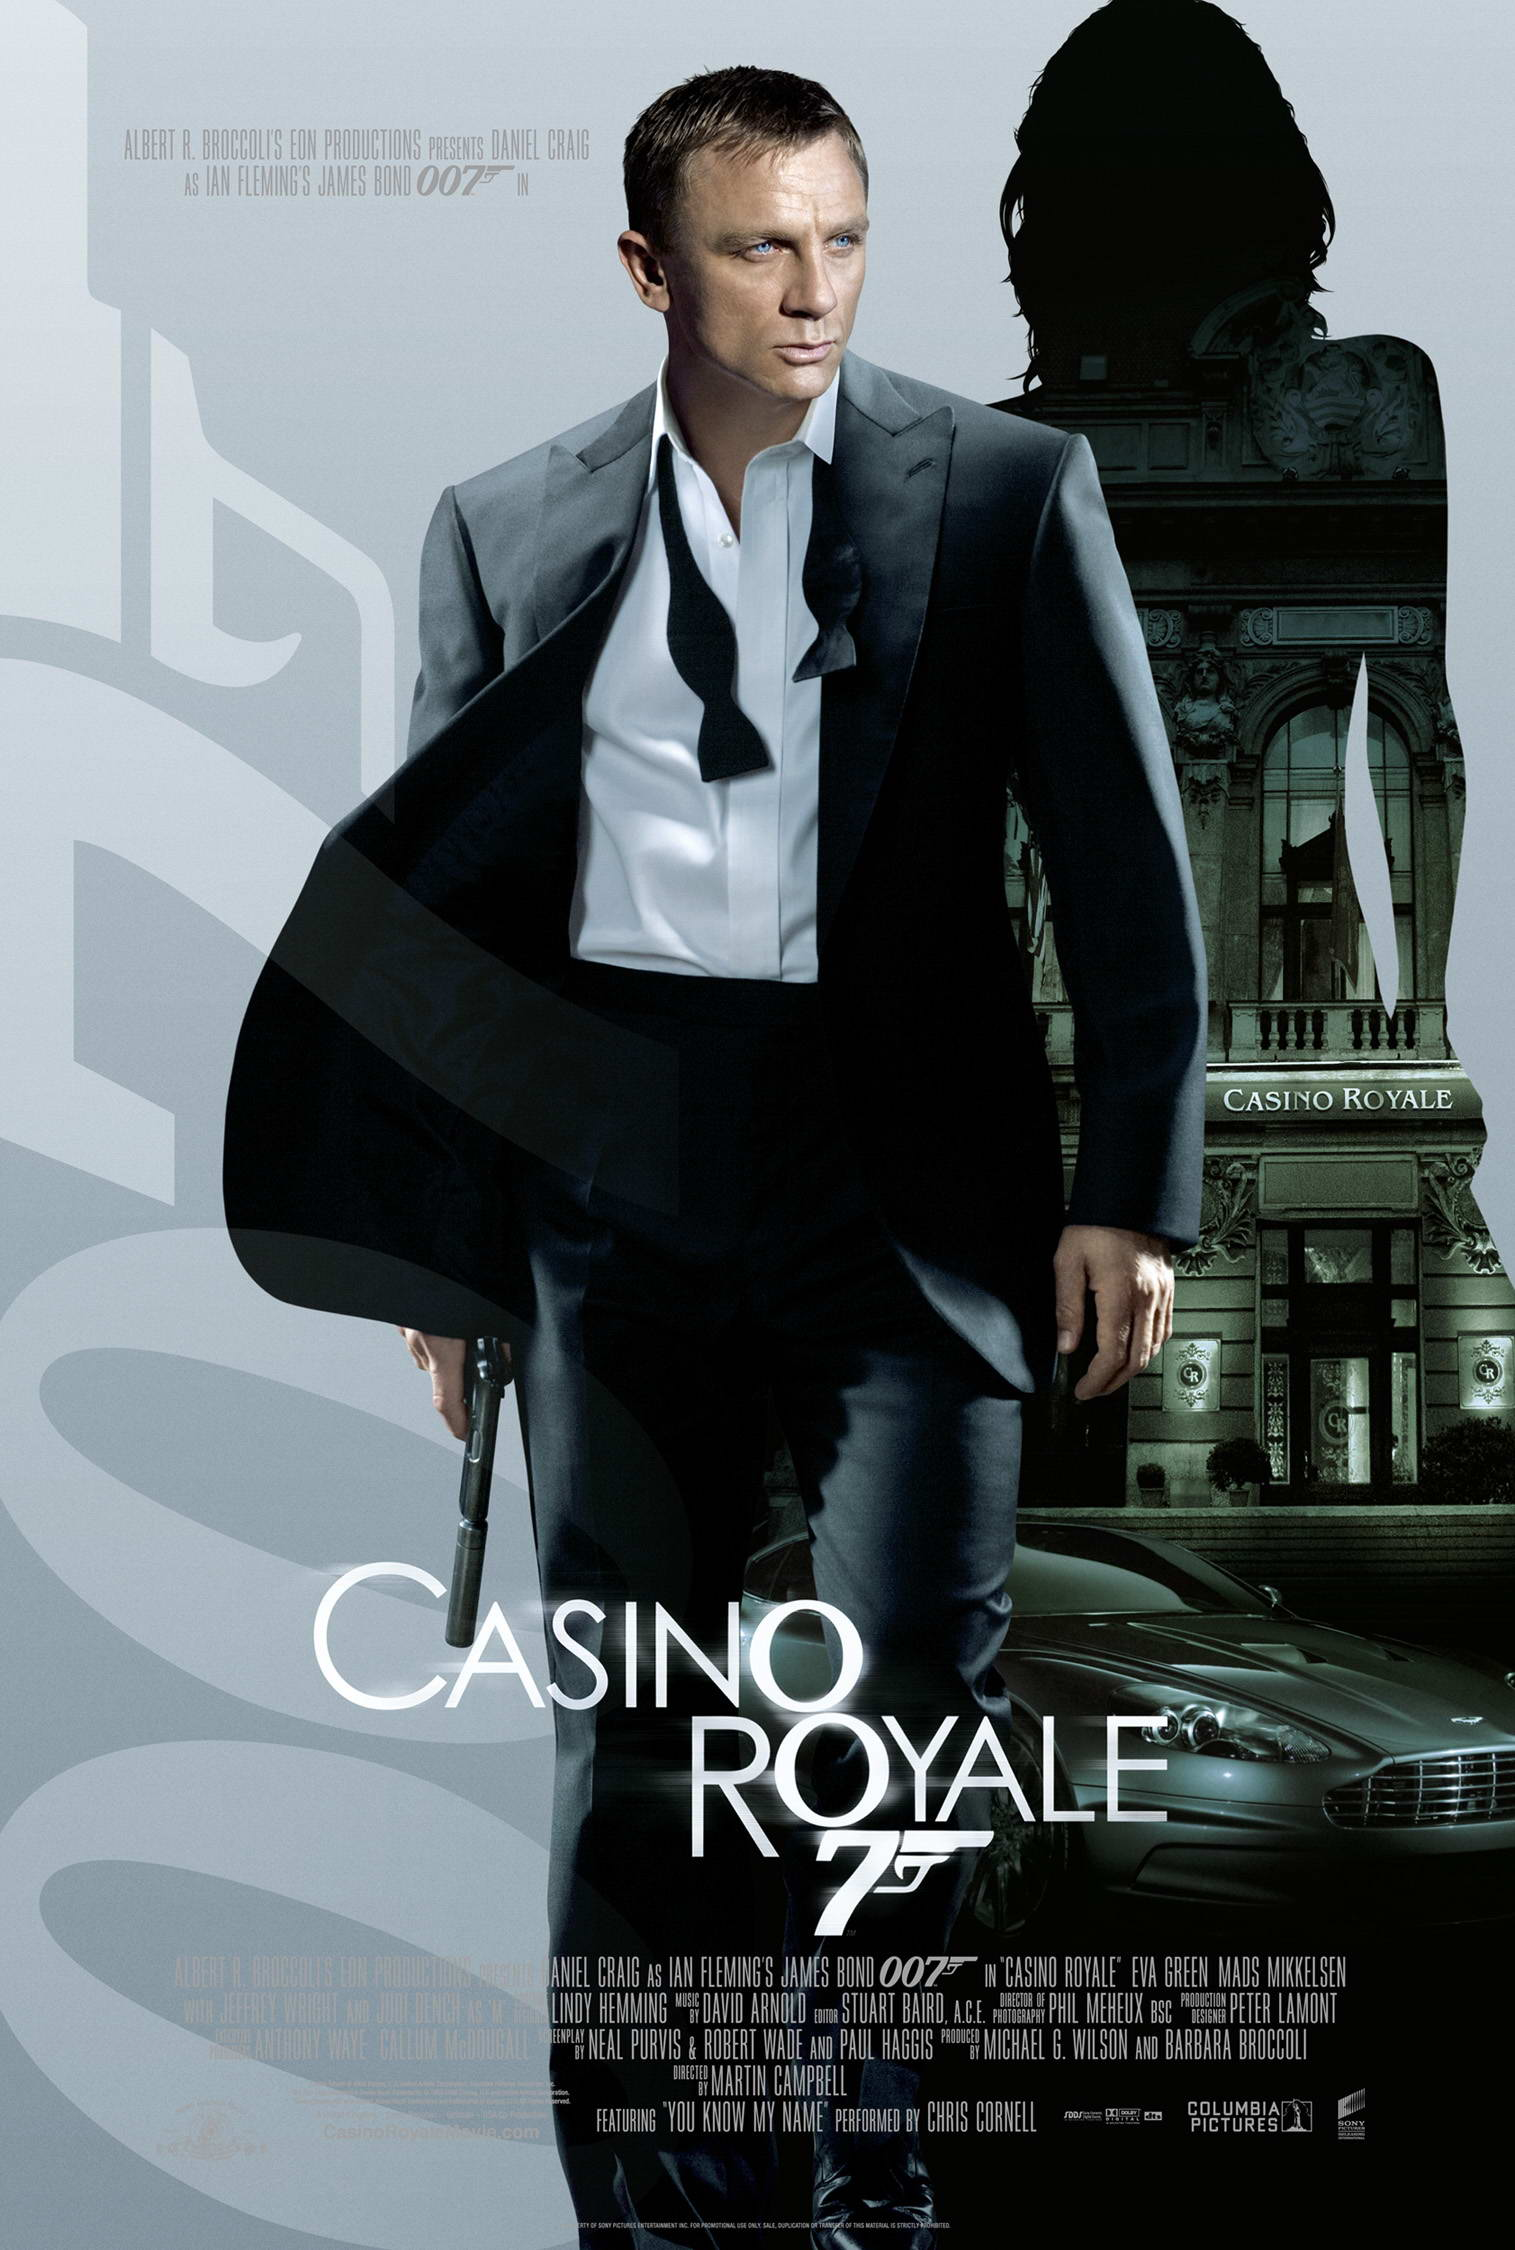 Bond casino james photo royale palma casino